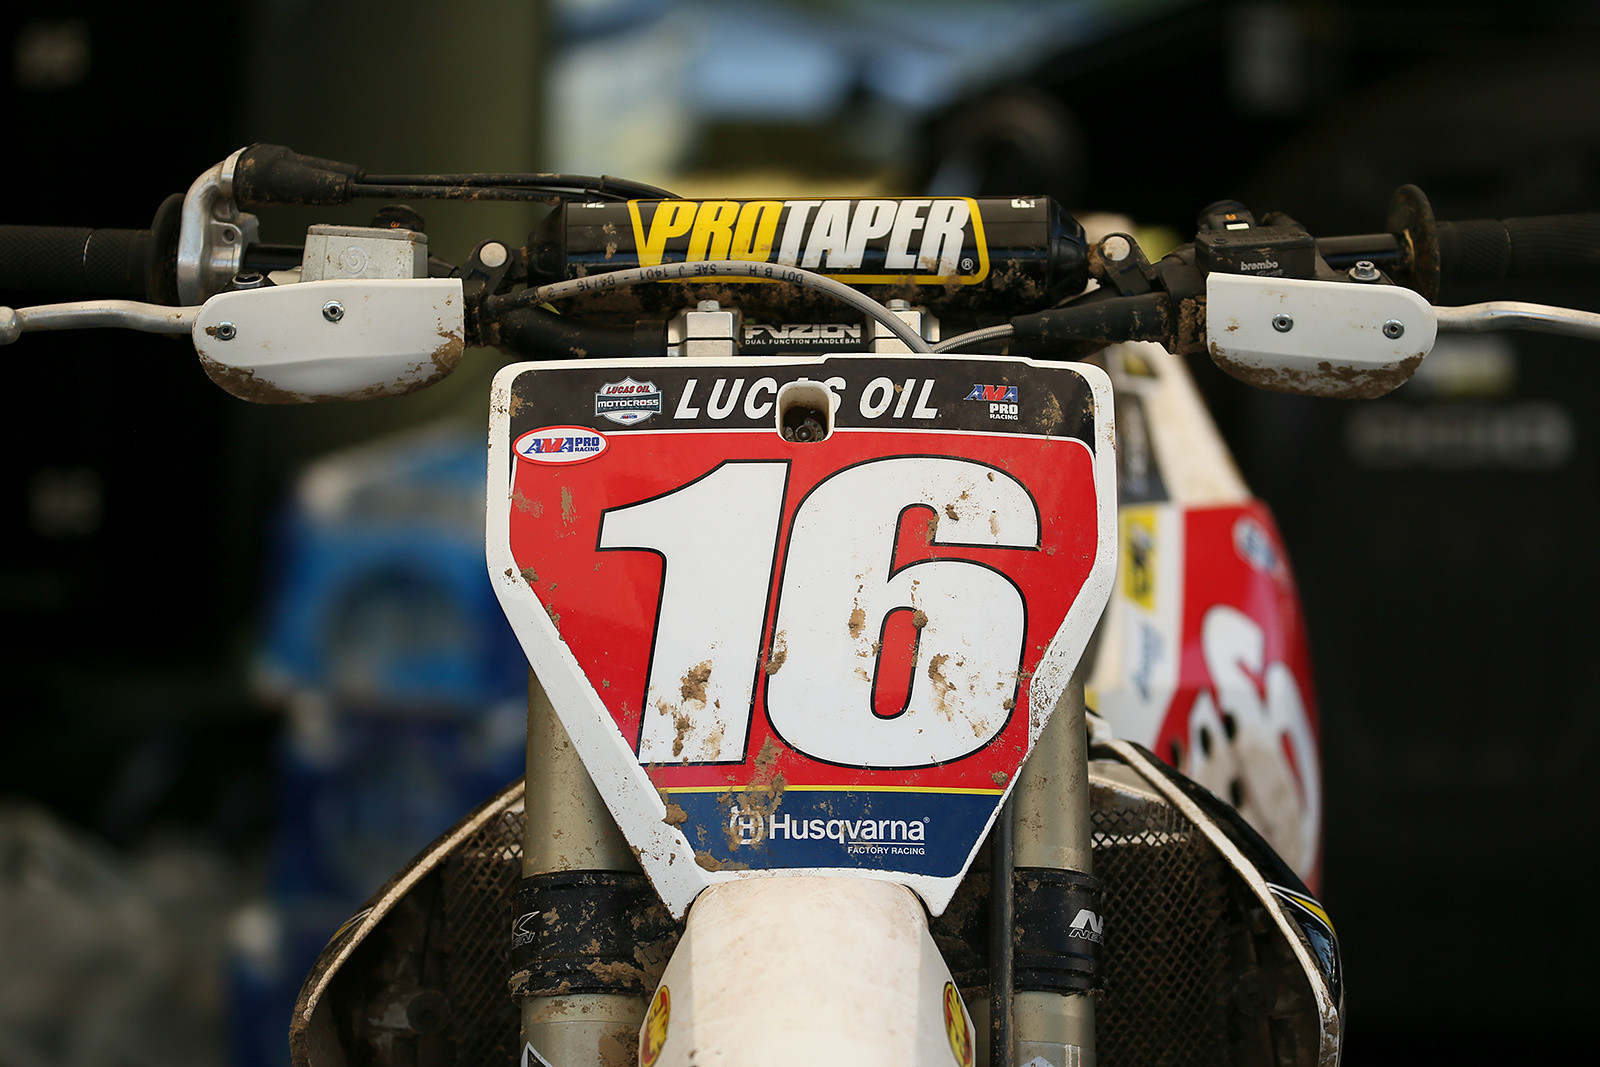 Modified handguard components also make up the protectors for Zach Osborne...